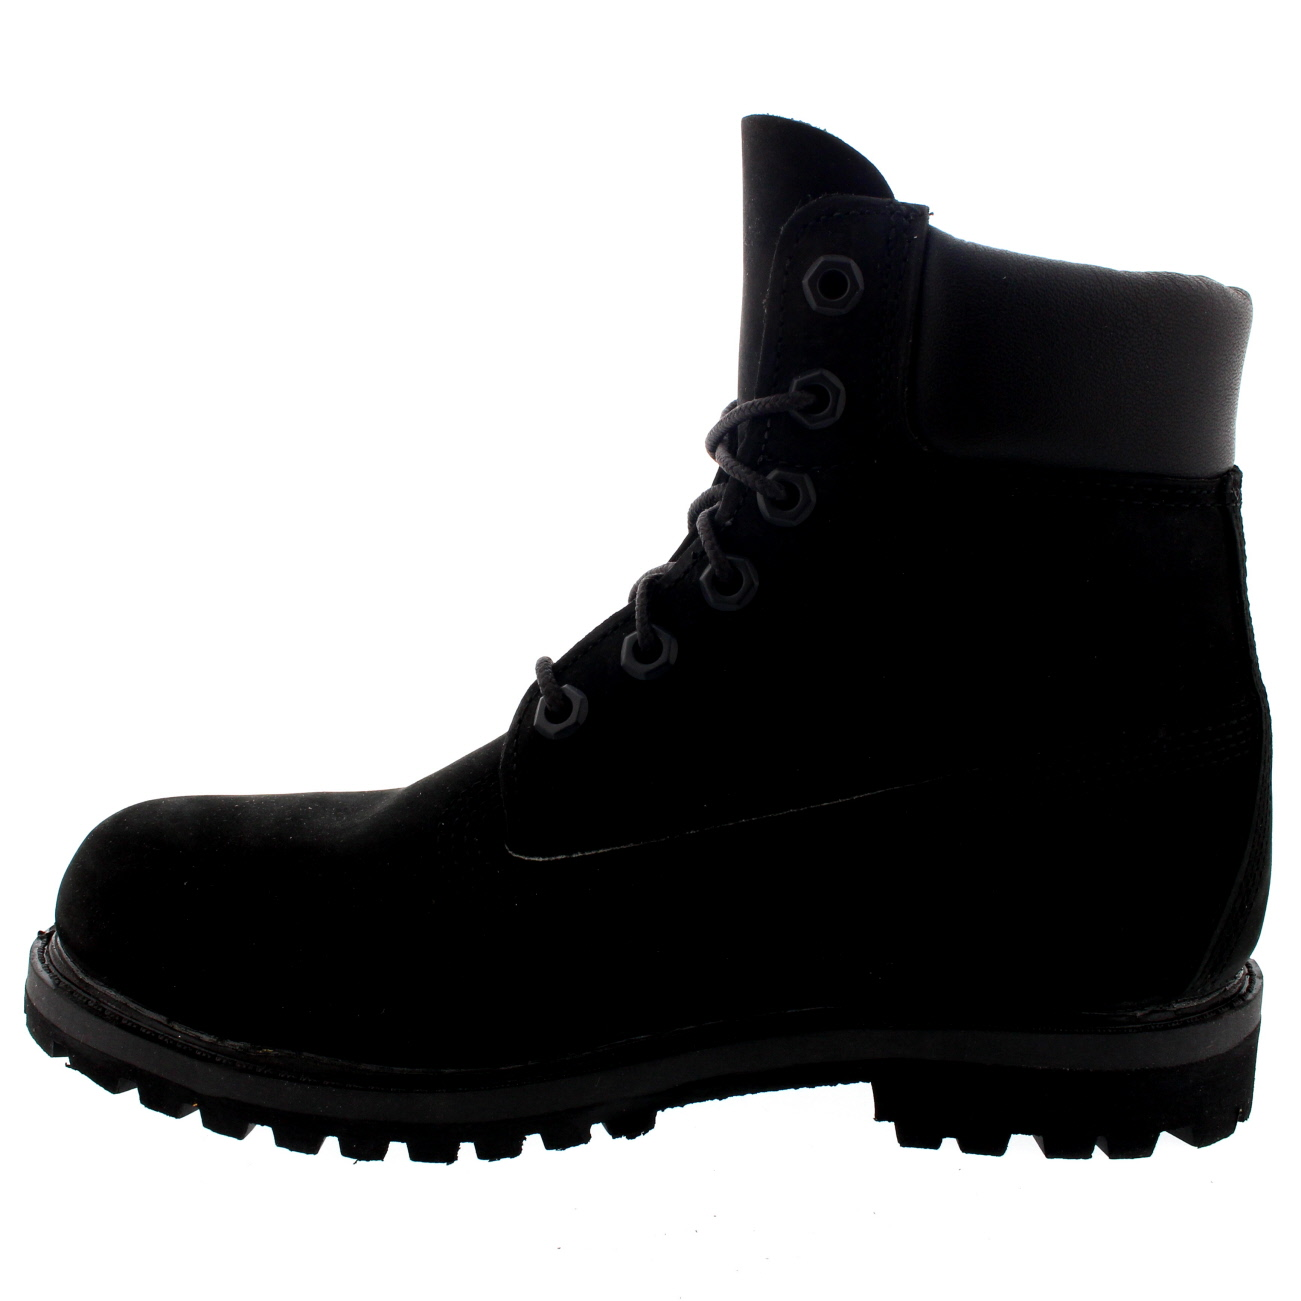 88cf3917ee09 Womens Timberland 6 Inch Premium Waterproof Lace Up Black Nubuck Boots UK  3-8